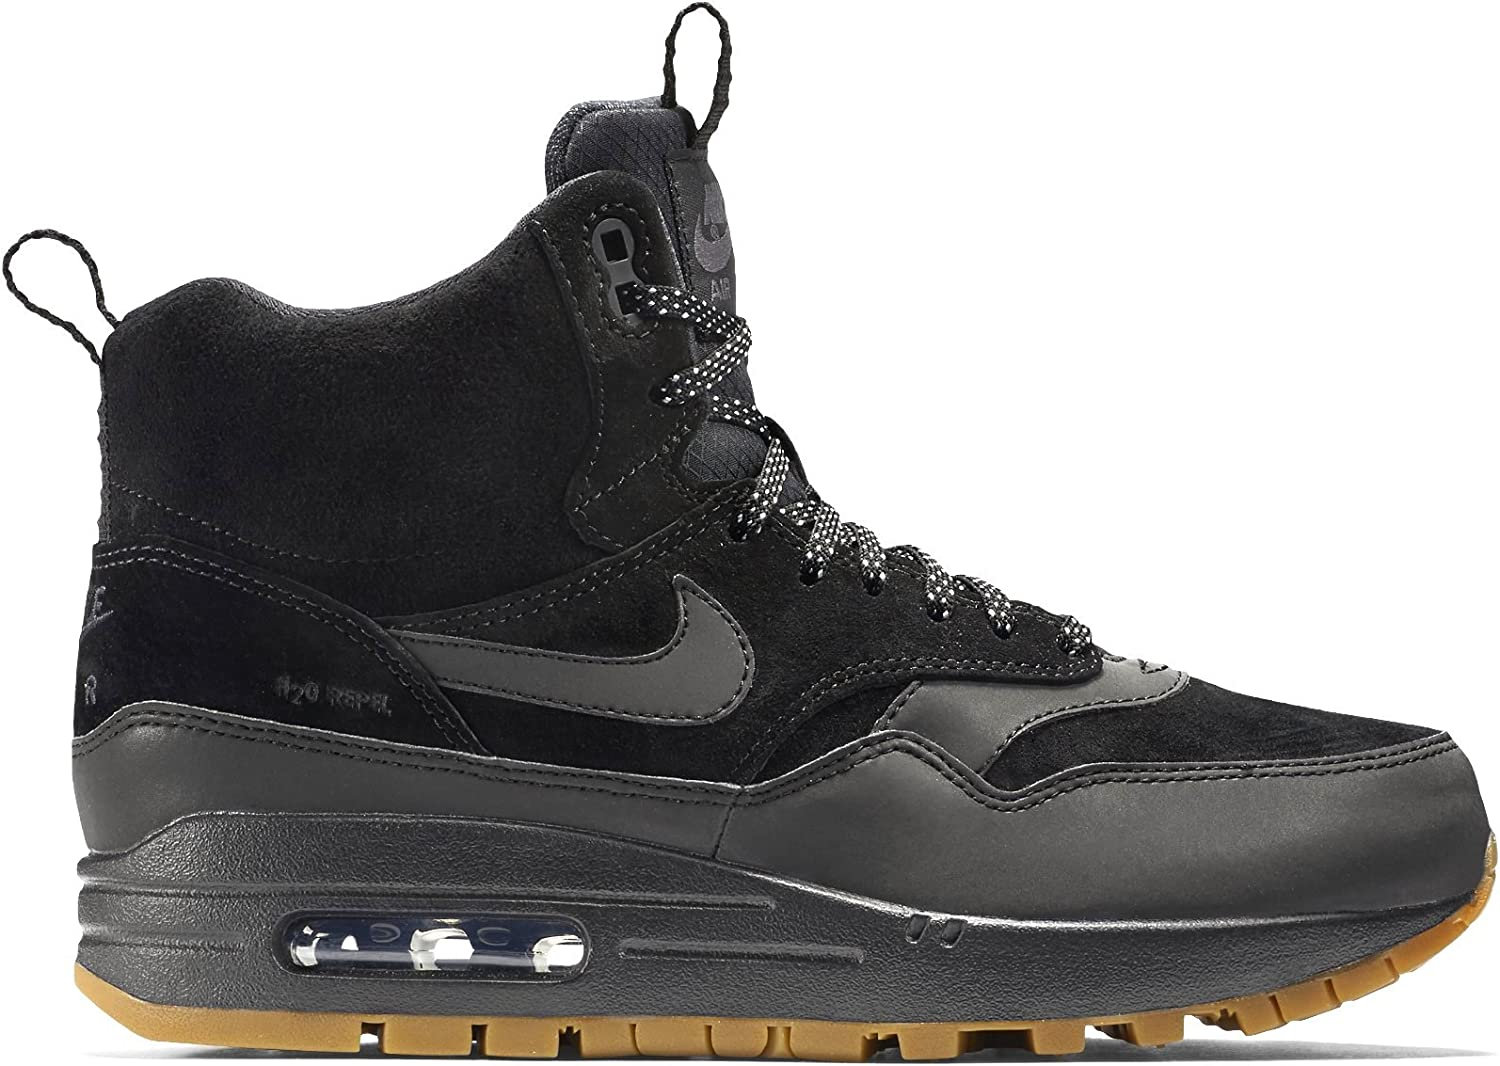 Nike Femmes air Max 1 Mid Sneakers Baskets Montantes 685267